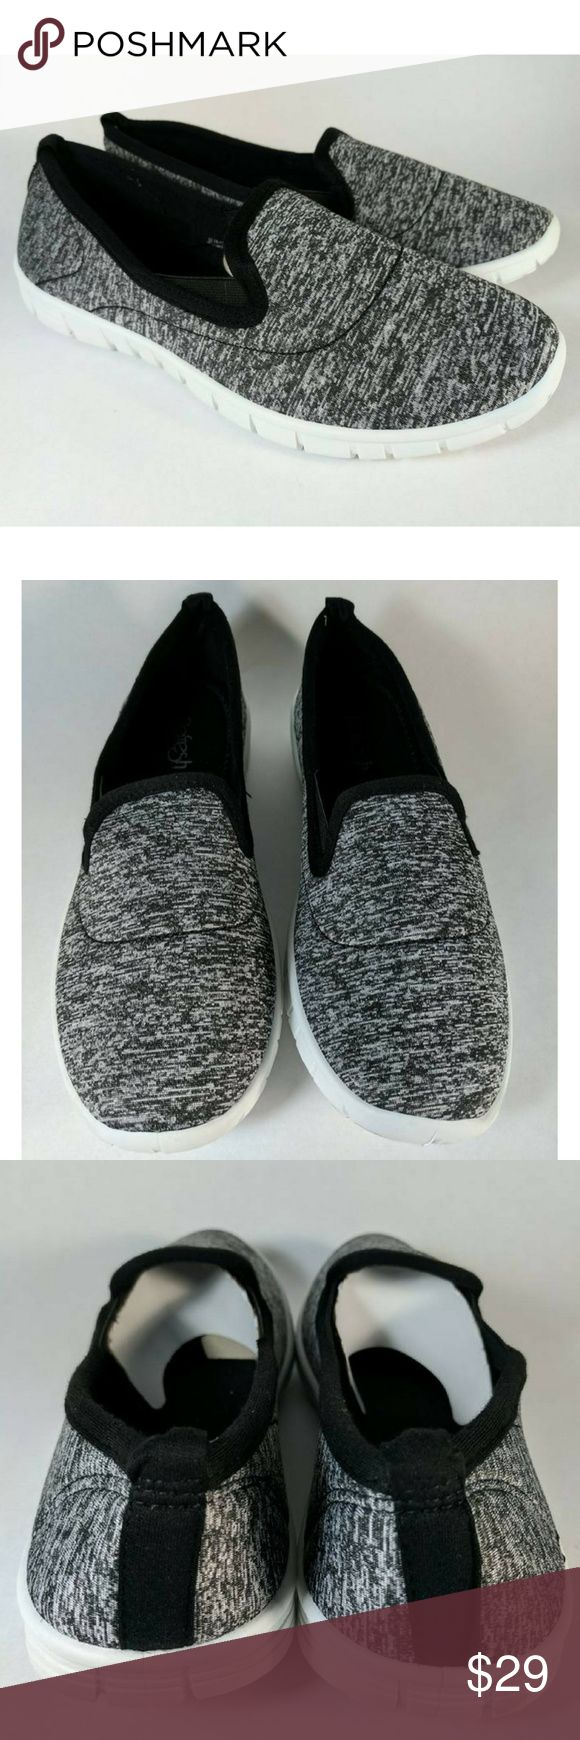 Refresh Slip On Tennis Shoes Style Jump-06 Sz 8.5M Classic look slip on tennis shoes. Heather black. Brand is Refresh. Style is Elisha-06 Size is 8.5M. They run true to size. Super soft cushion insole.  New in Box. Refresh Shoes Sneakers